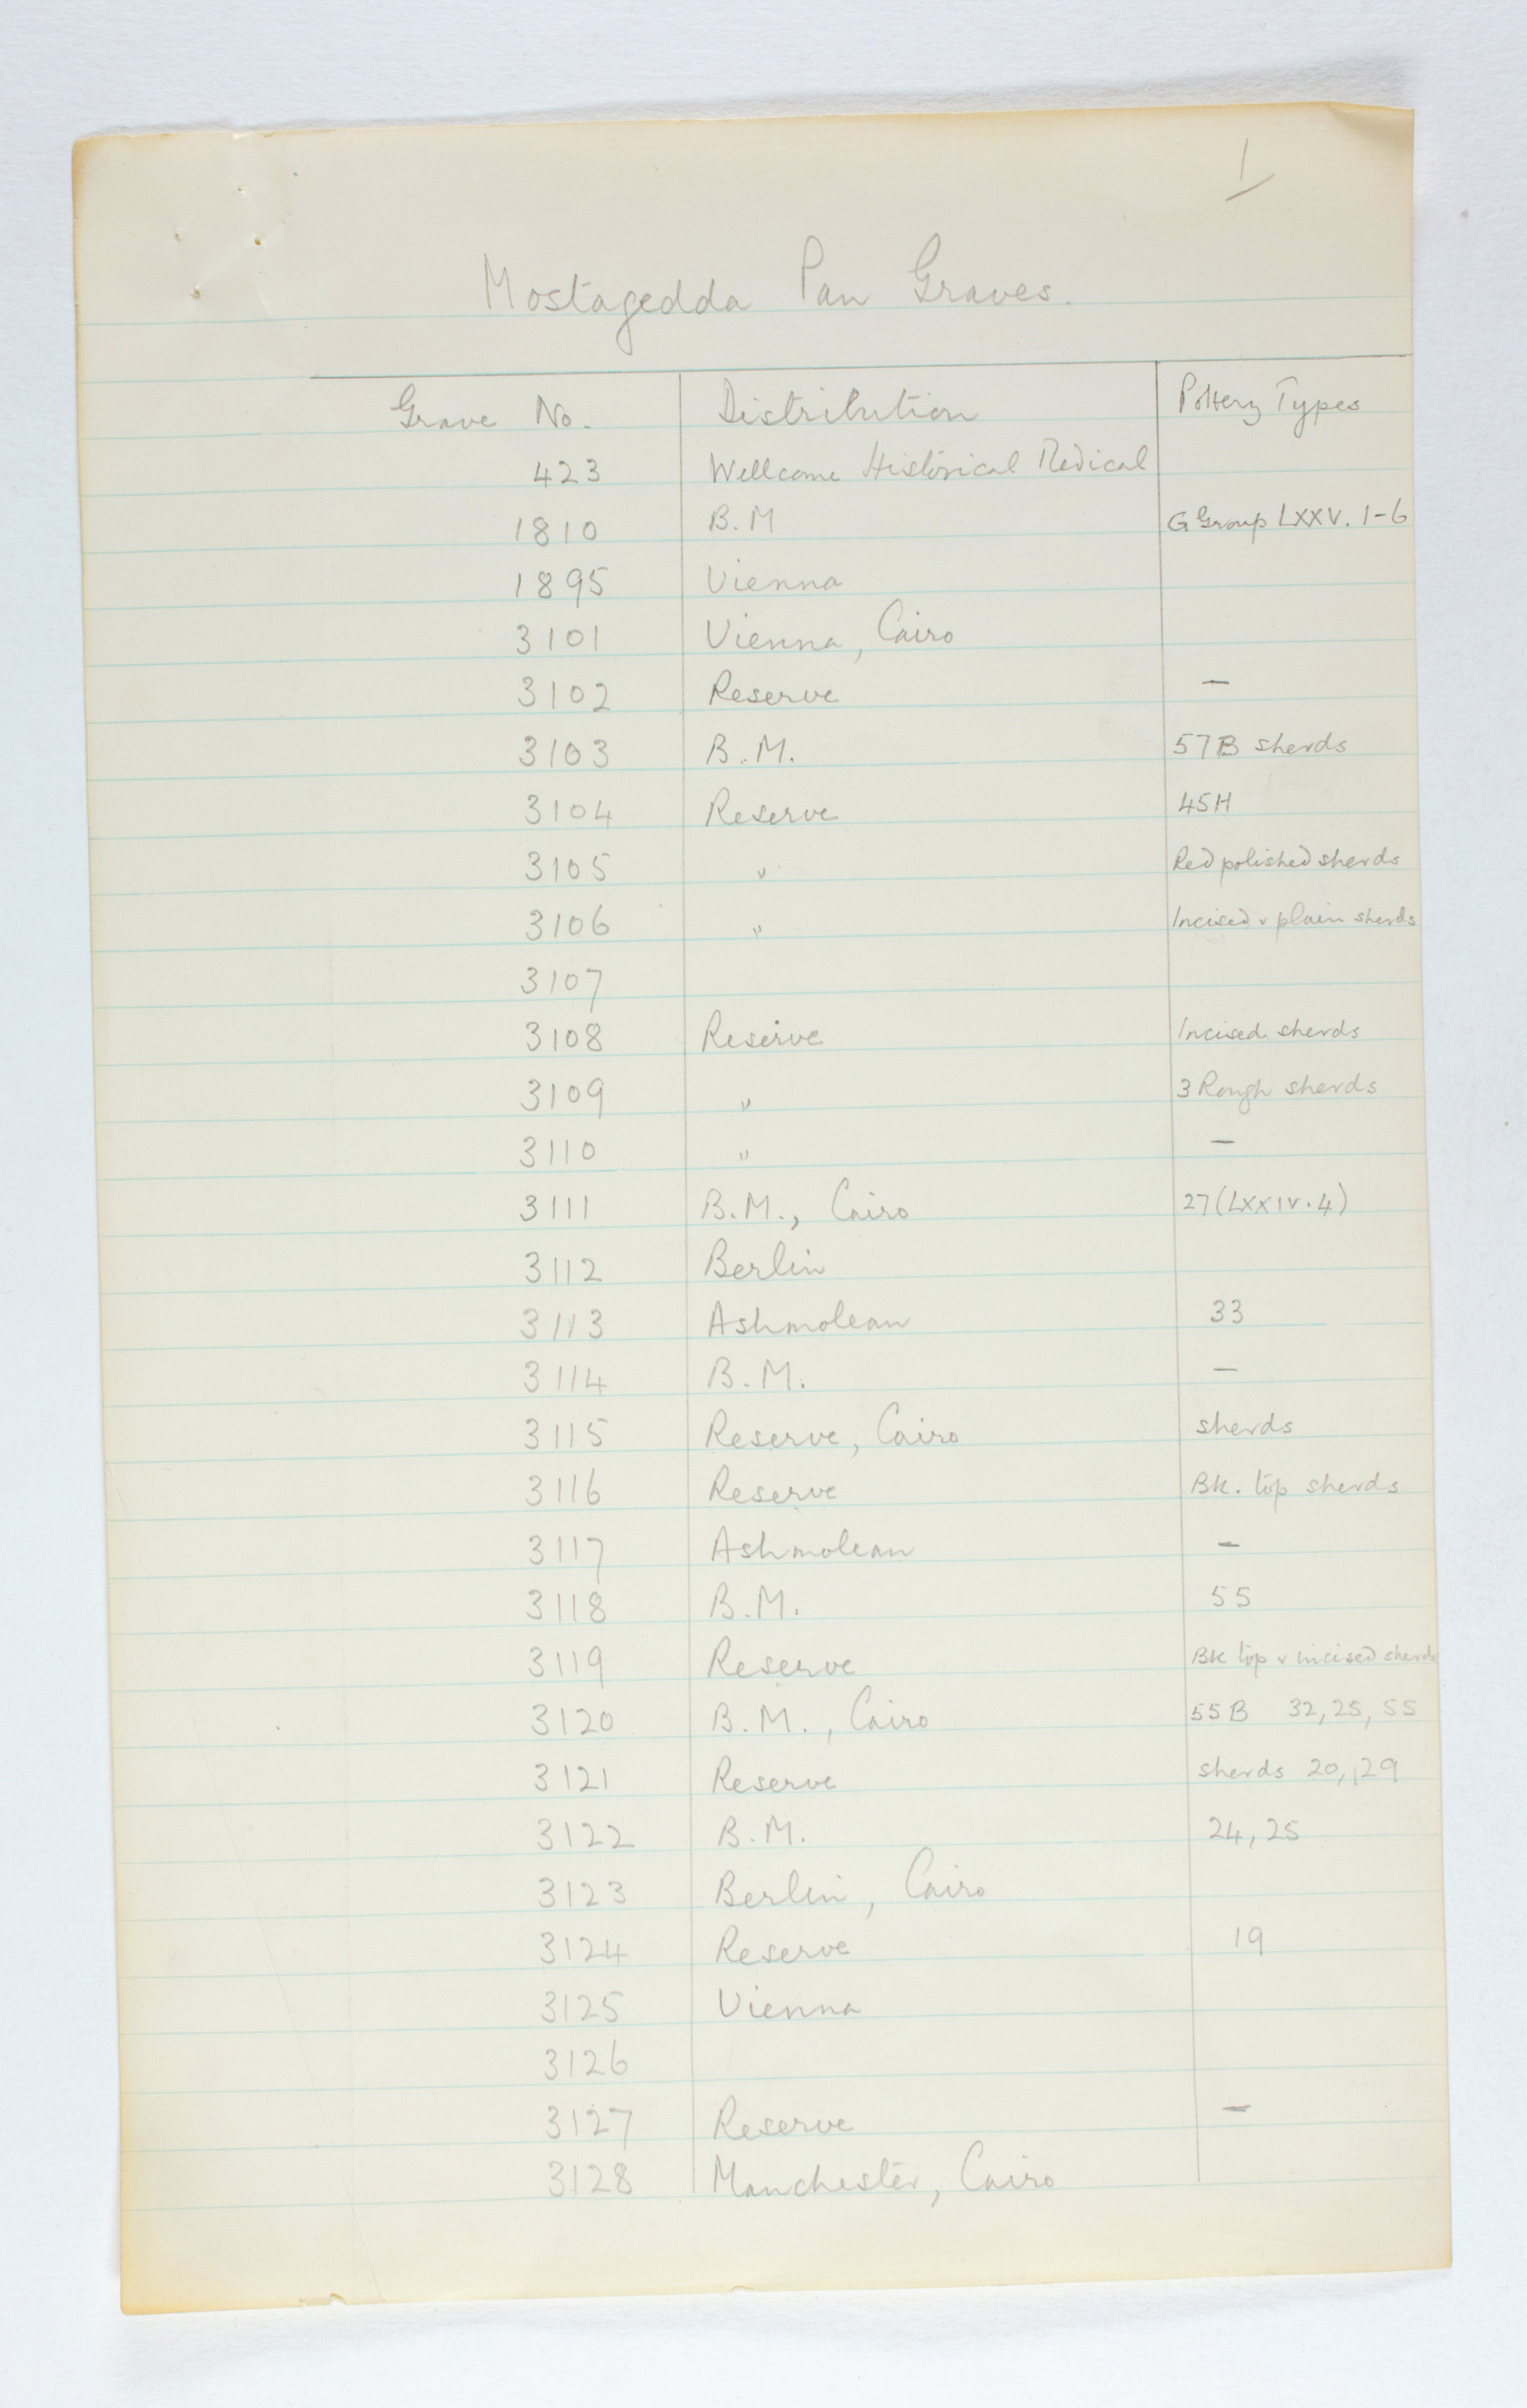 1929-30 Qau el-Kebir, Mostagedda Multiple institution list PMA/WFP1/D/31/1.5